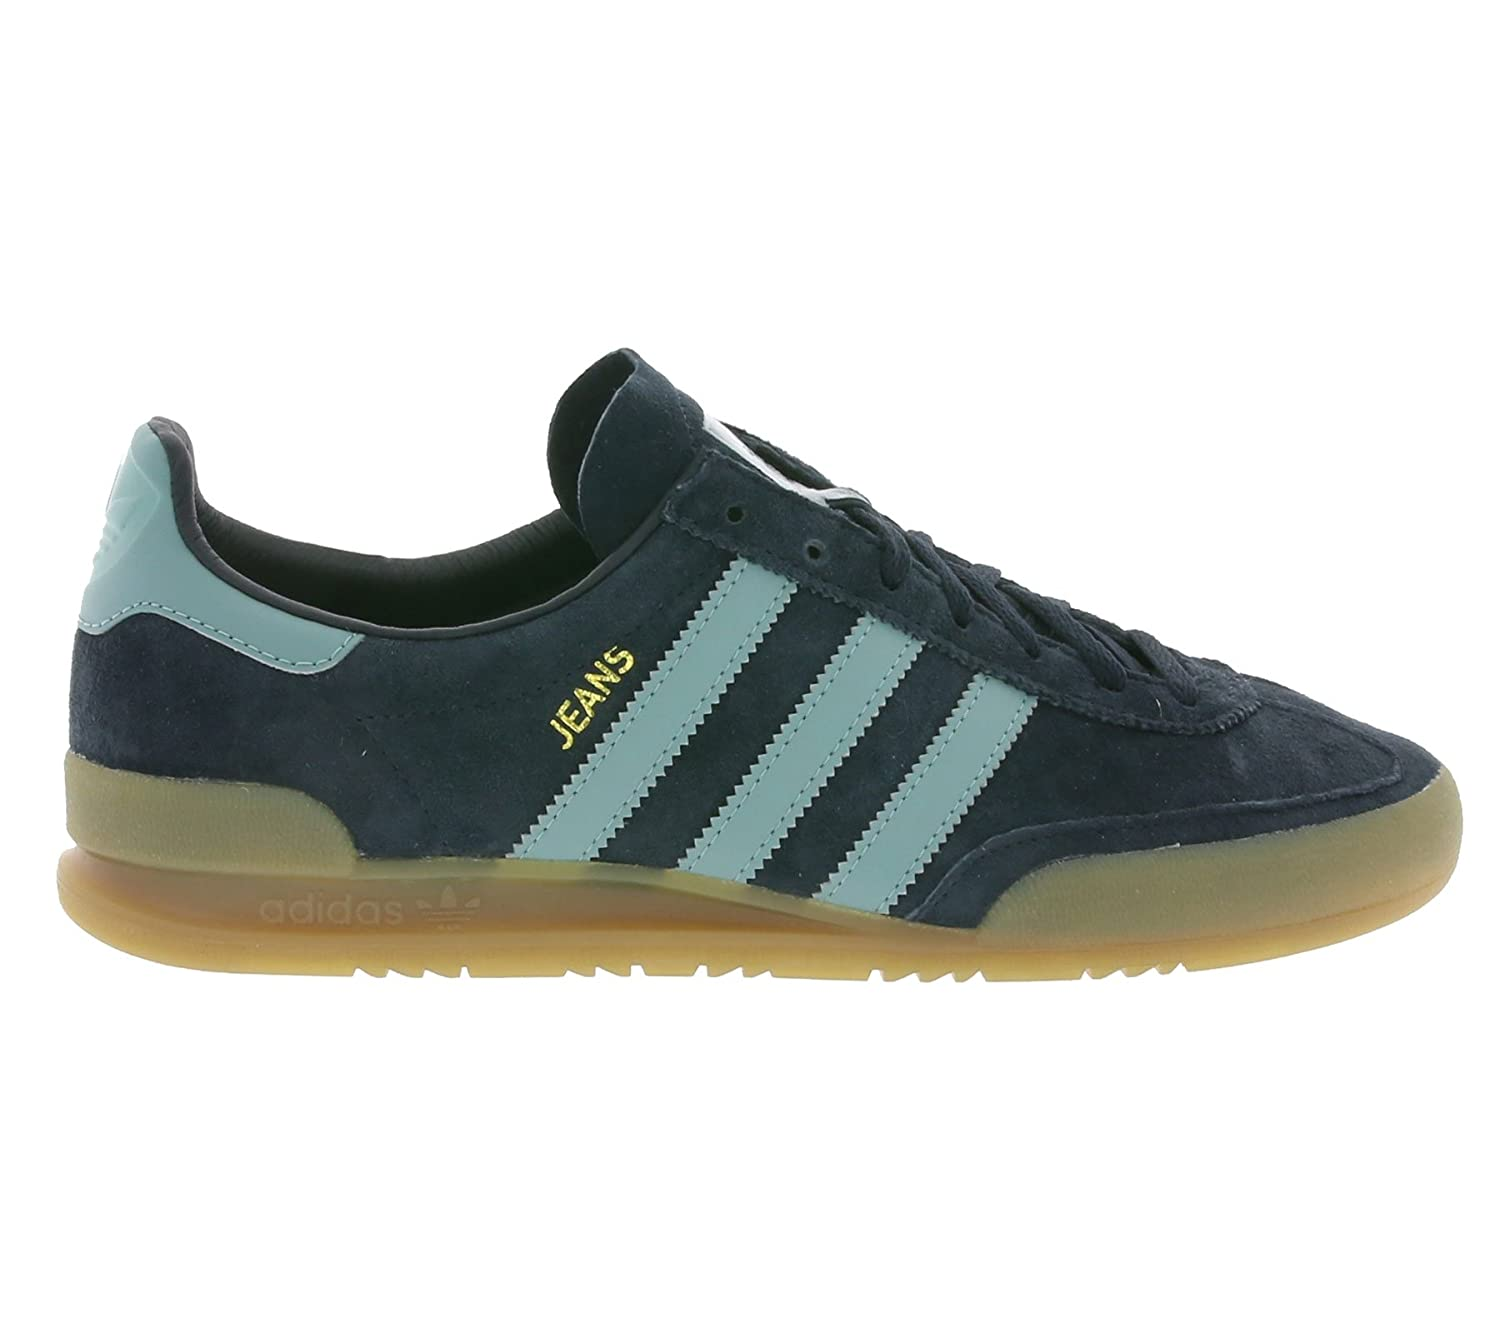 promo code 78a9b 15030 adidas Jeans, Men s Trainers  Amazon.co.uk  Shoes   Bags